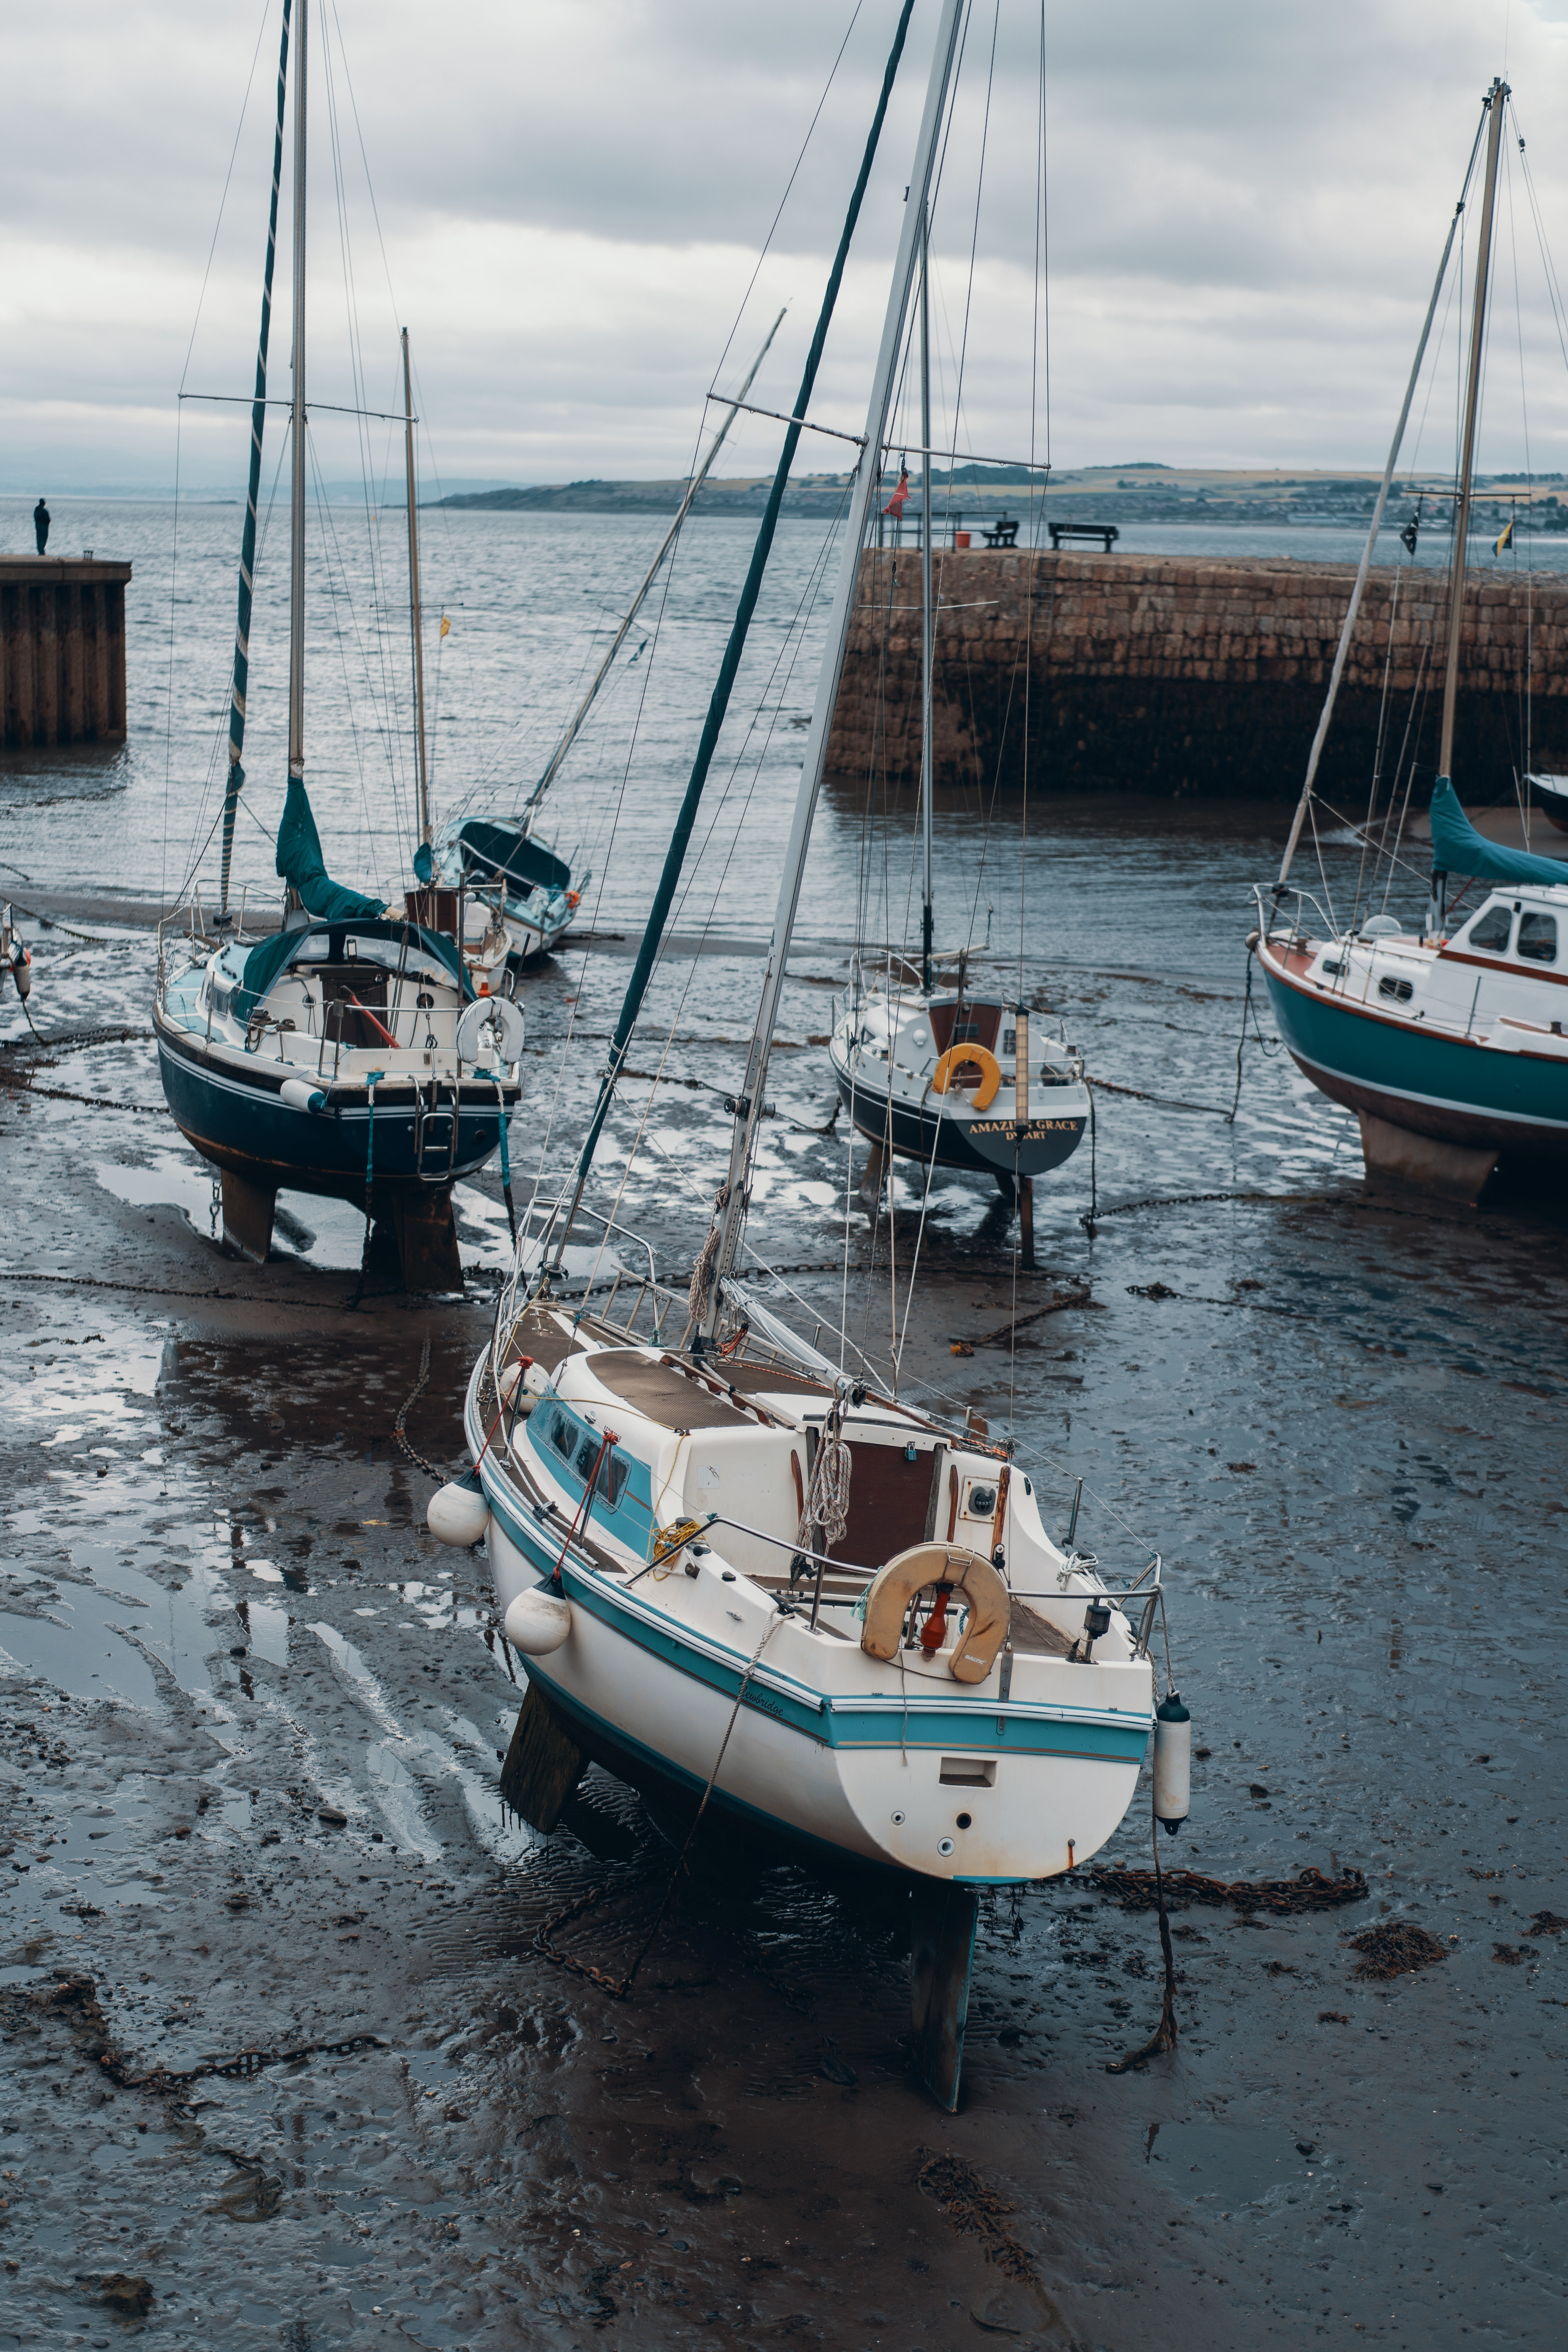 four fishing boats docked on gray sandy coast during daytime